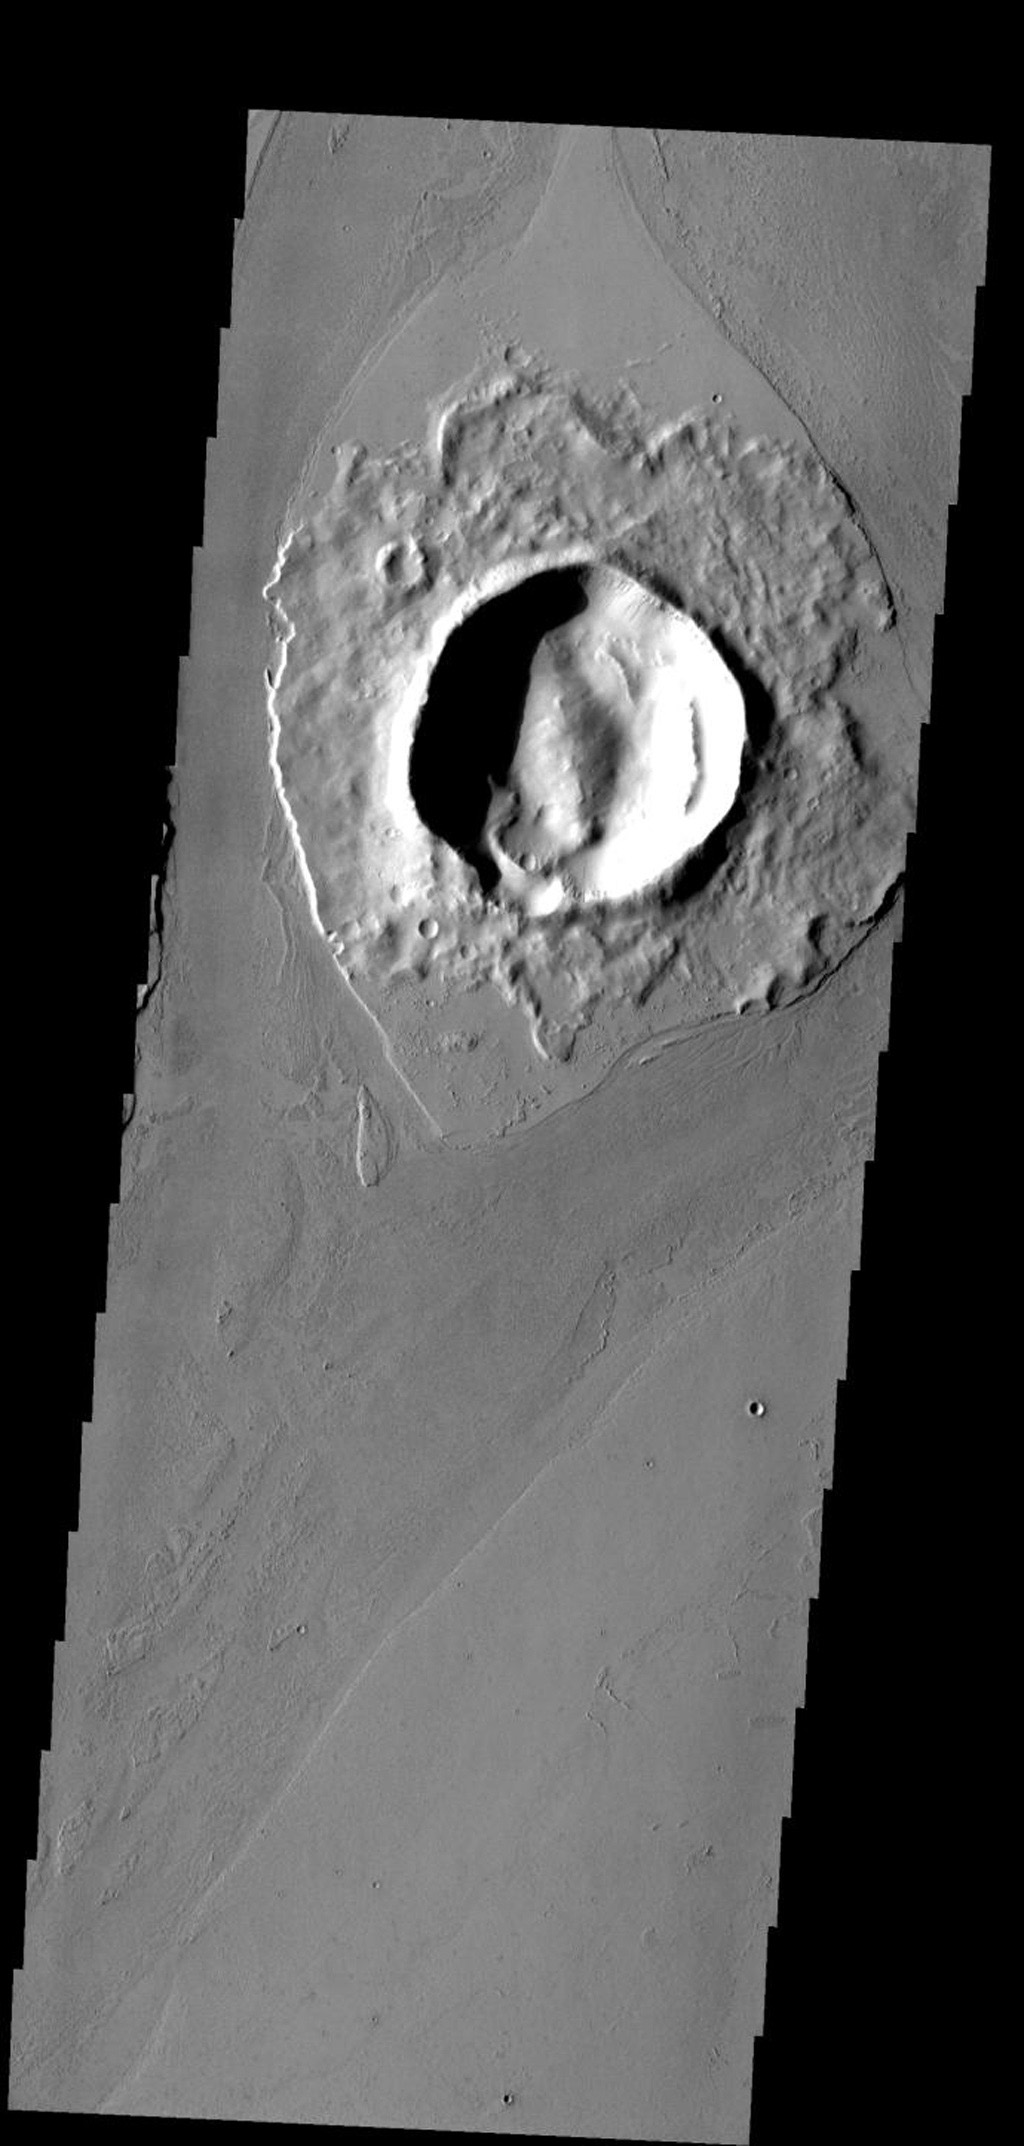 The crater in this image has affected the flow of lava around it, creating a streamlined 'island' on Mars as seen by NASA's Mars Odyssey spacecraft.